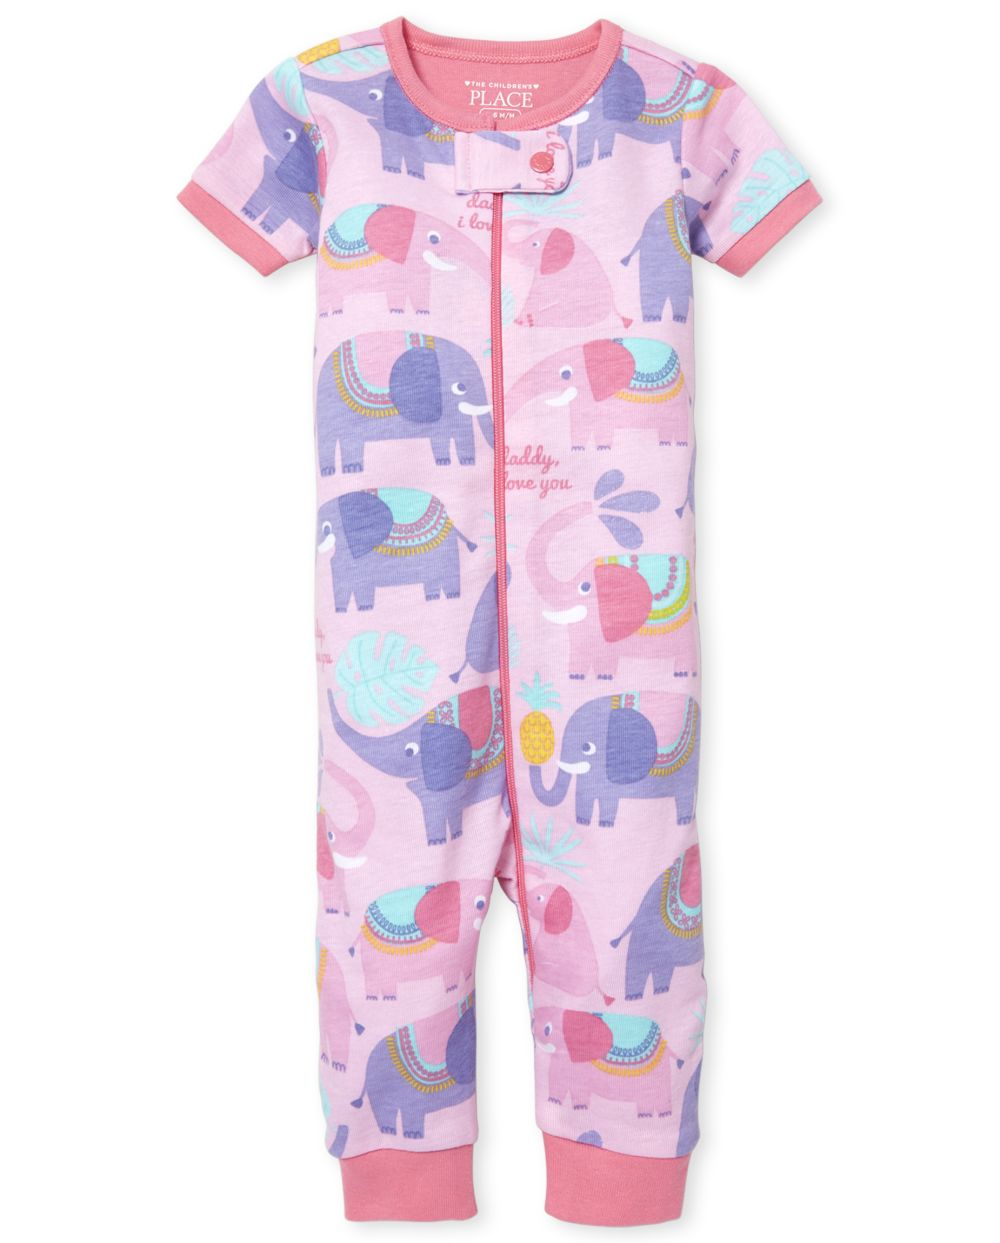 Baby And Toddler Girls Elephant Snug Fit Cotton One Piece Pajamas